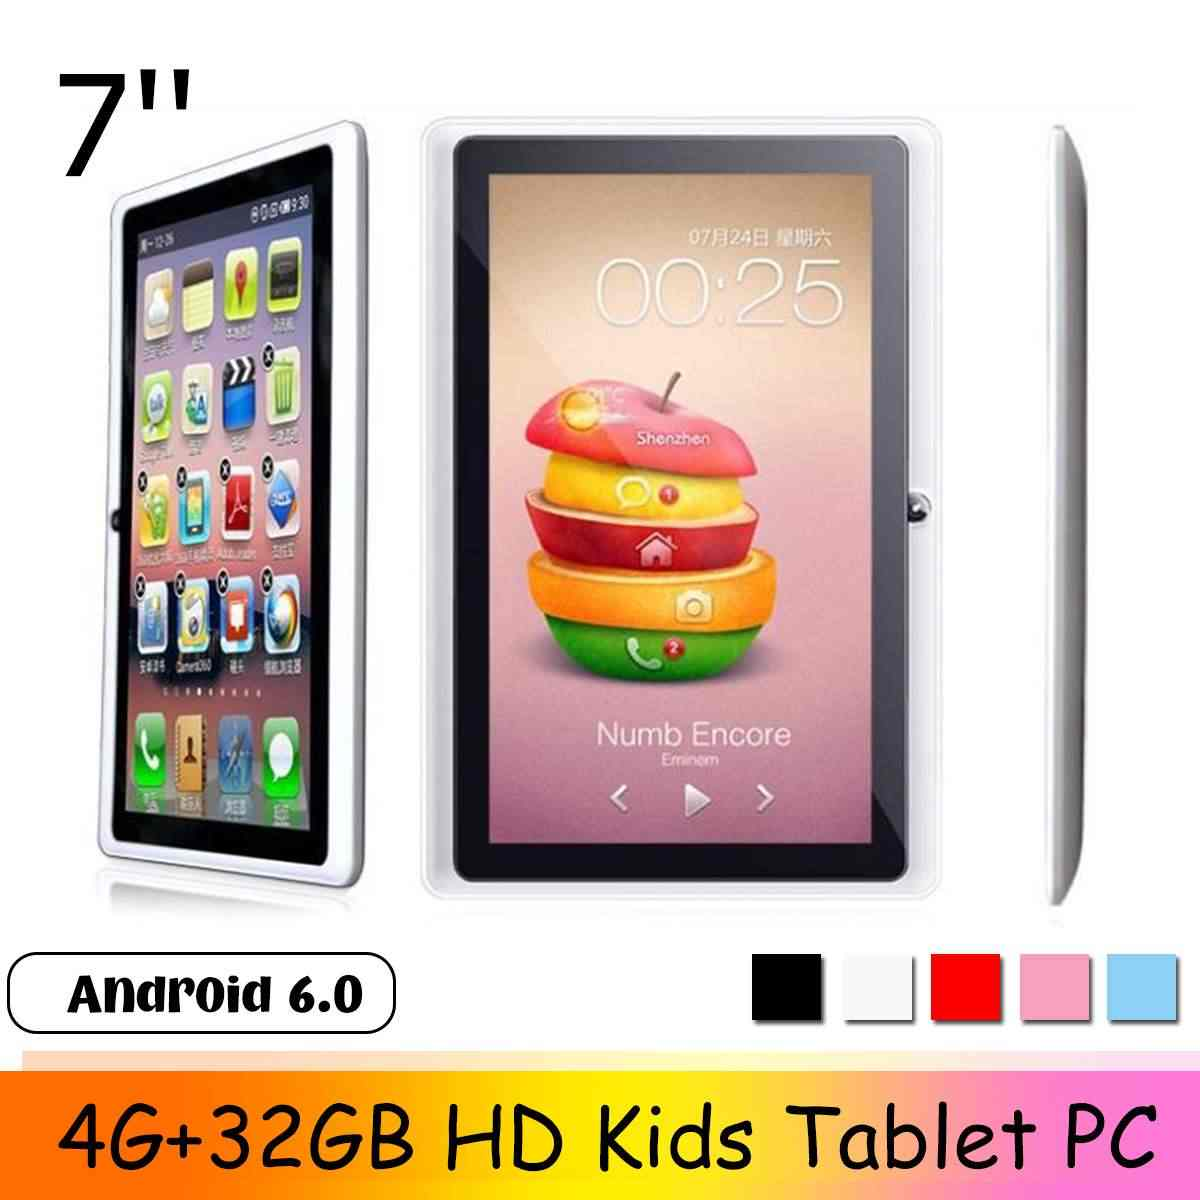 LEORY 2019 nuevo 7 pulgadas HD Tablet PC 4G + 32GB Android 6,0 Quad Core 4000mAh tableta de navegación bluetooth WIFI para niños